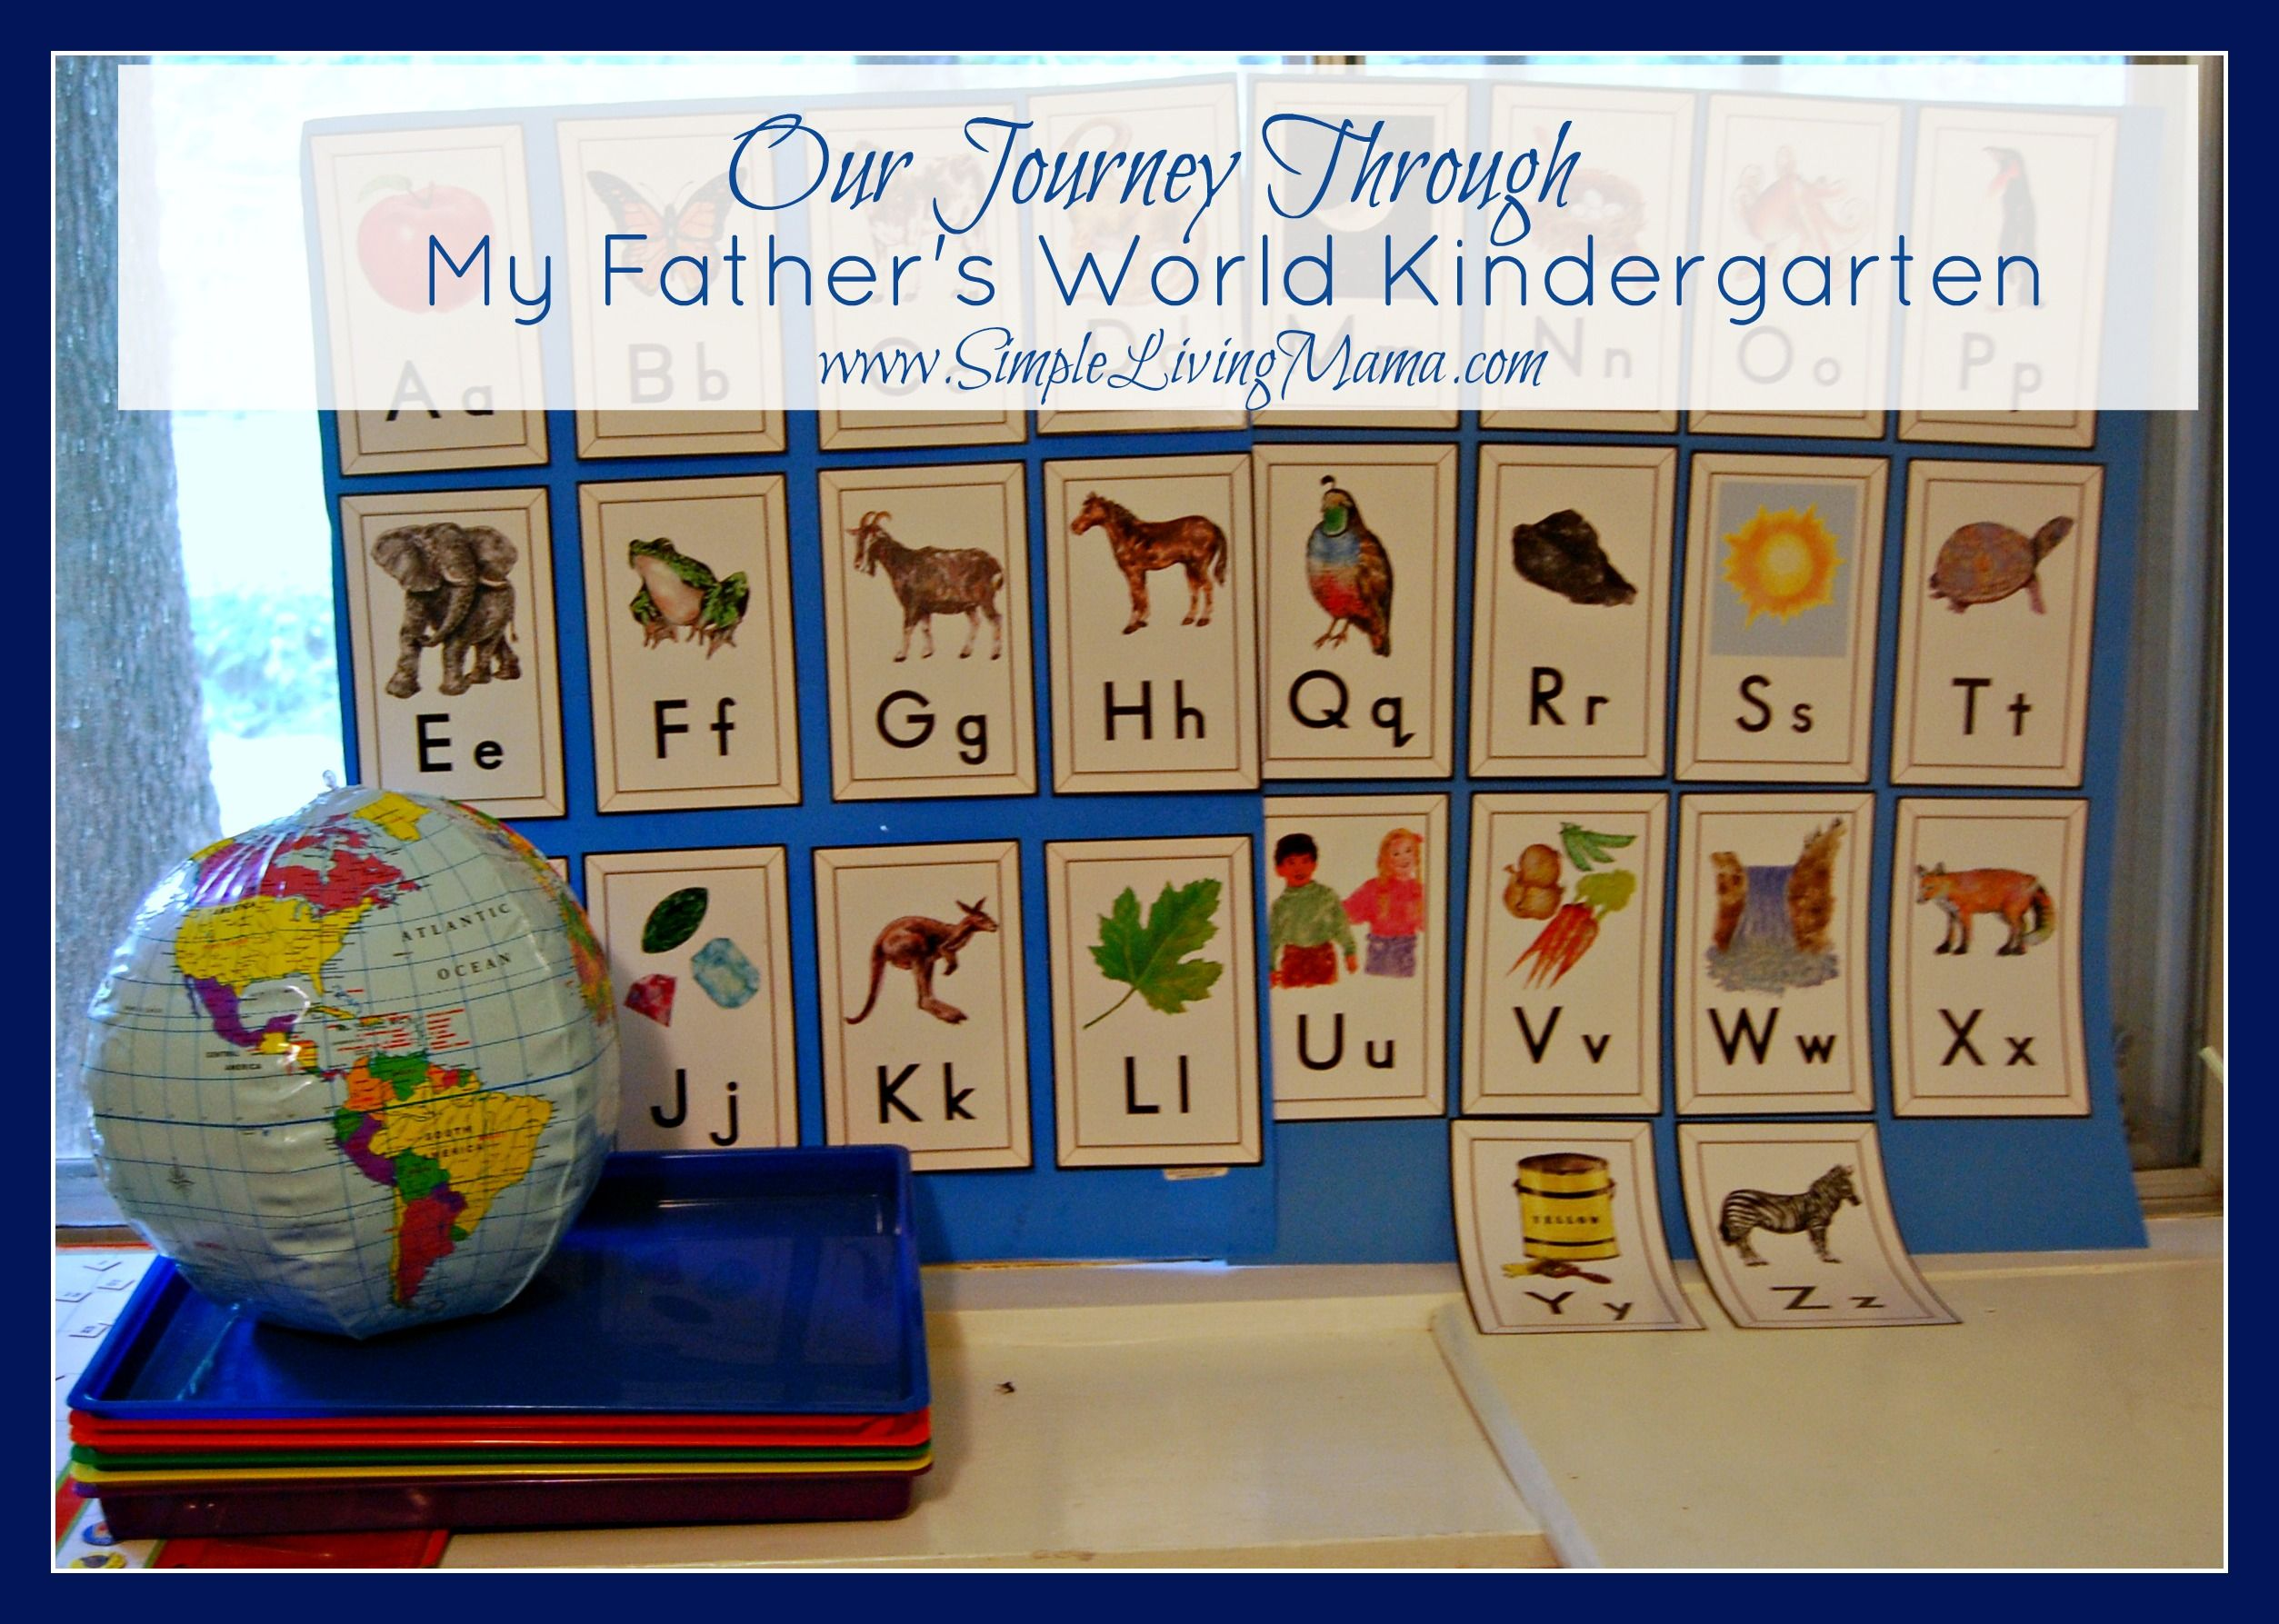 Supplements For My Father's World Kindergarten   Future